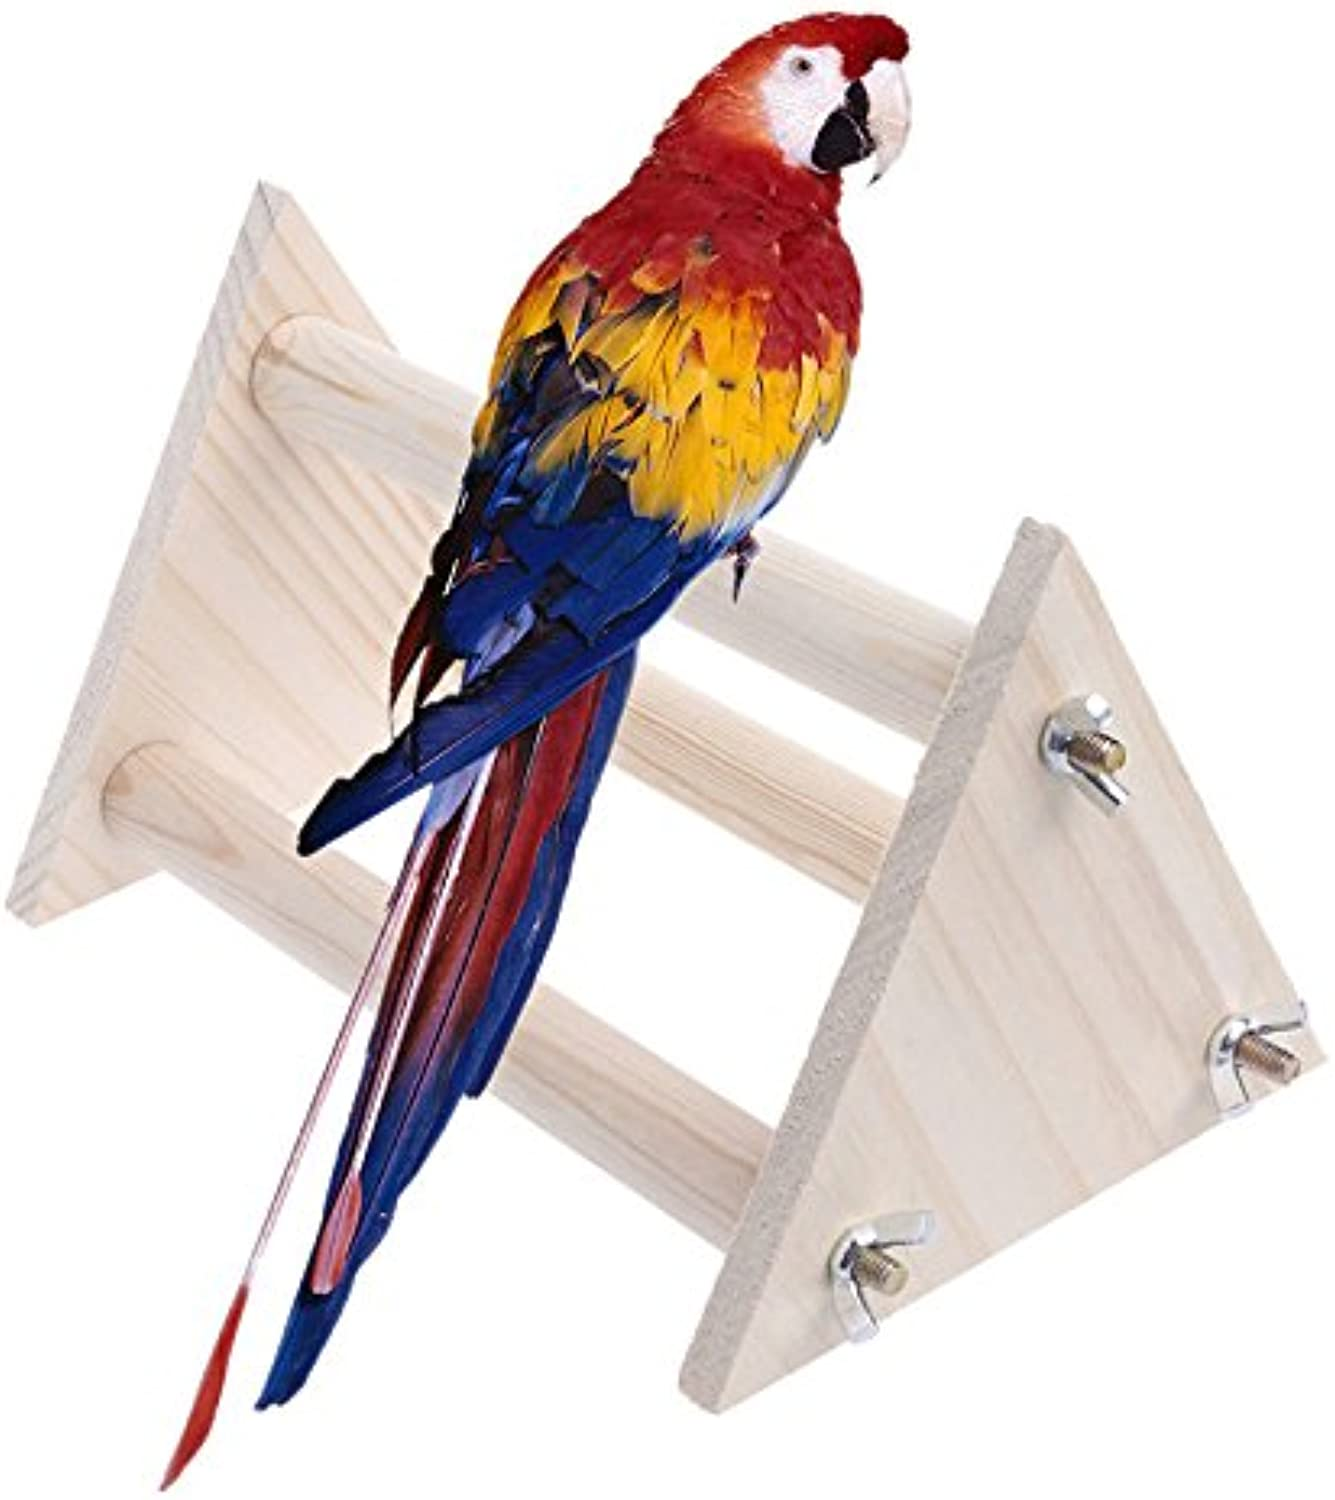 Funny Parred Bird Perch Stand Play Toys Gym Wooden Activity Table Top Playstand